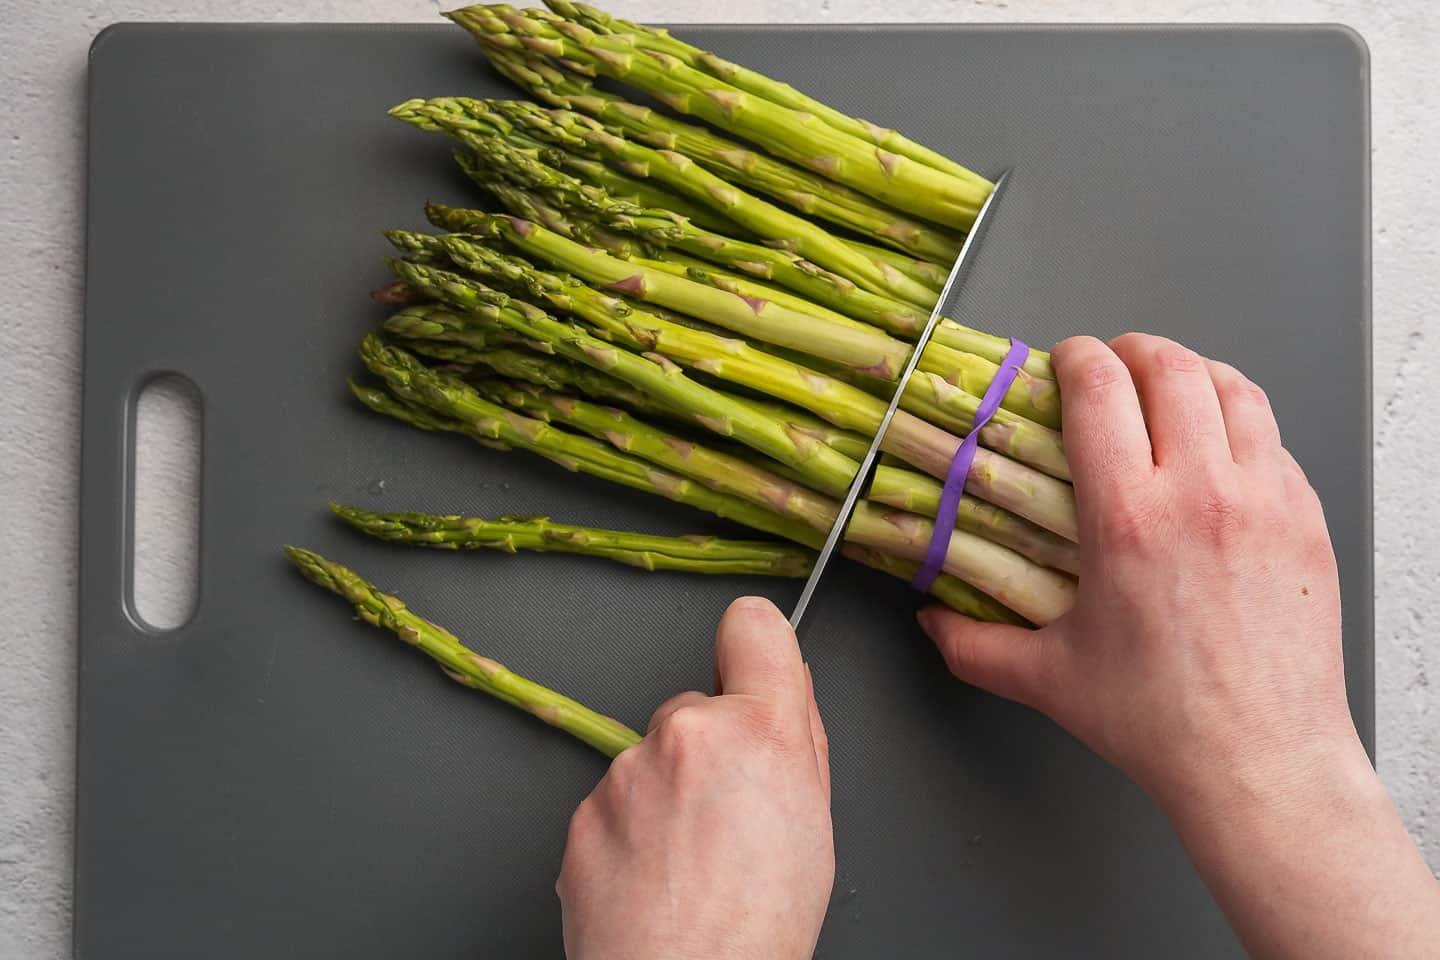 Knife cutting ends off a bunch of asparagus on a cutting board